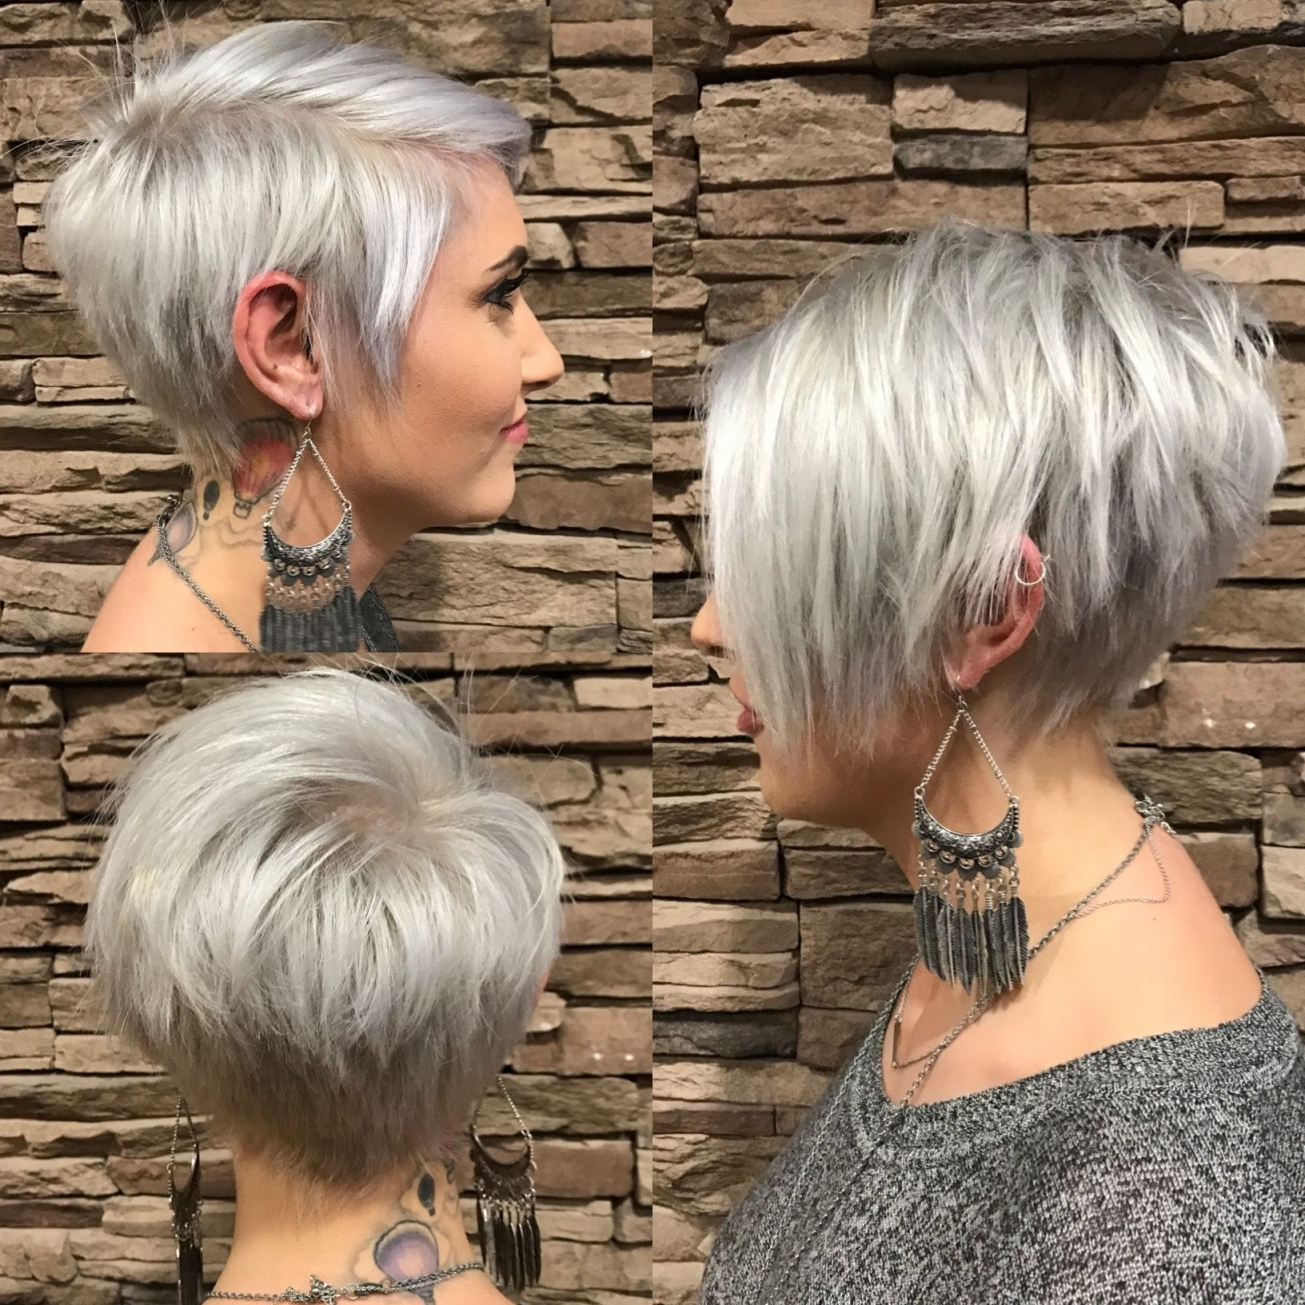 Asymmetrical Bob Short Hair Best Of Long Pixie With Bangs Silver Regarding Current Stacked Pixie Bob Hairstyles With Long Bangs (Gallery 13 of 20)